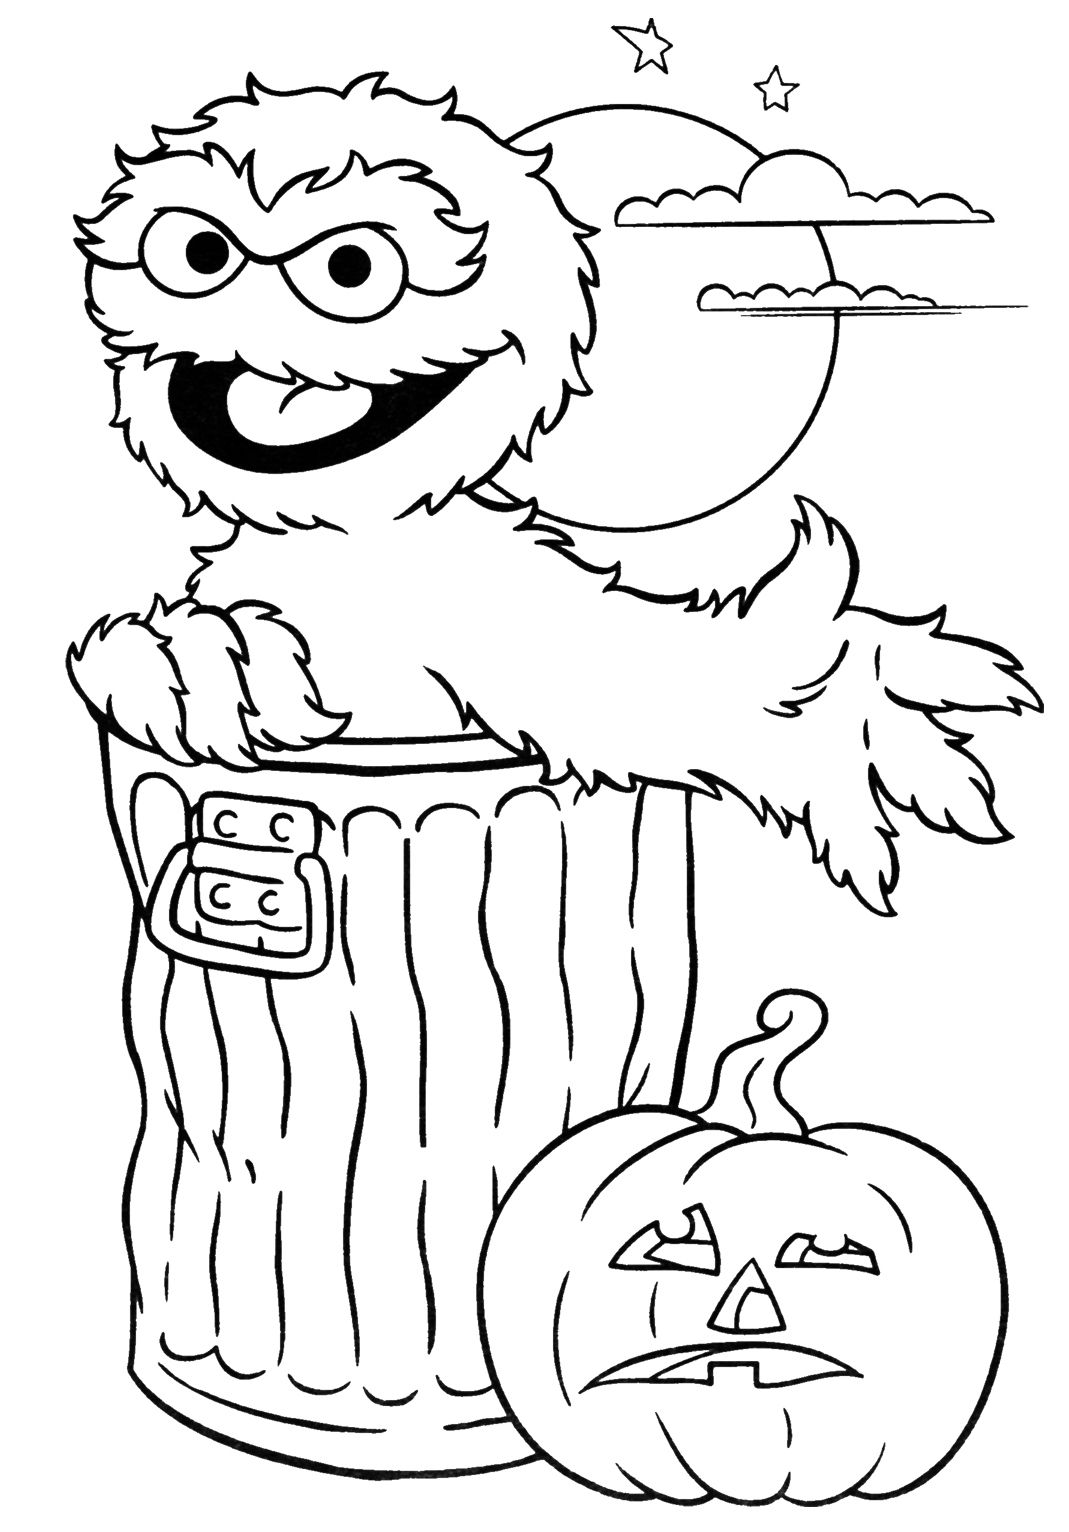 coloring pages oscar the grouch - photo#21